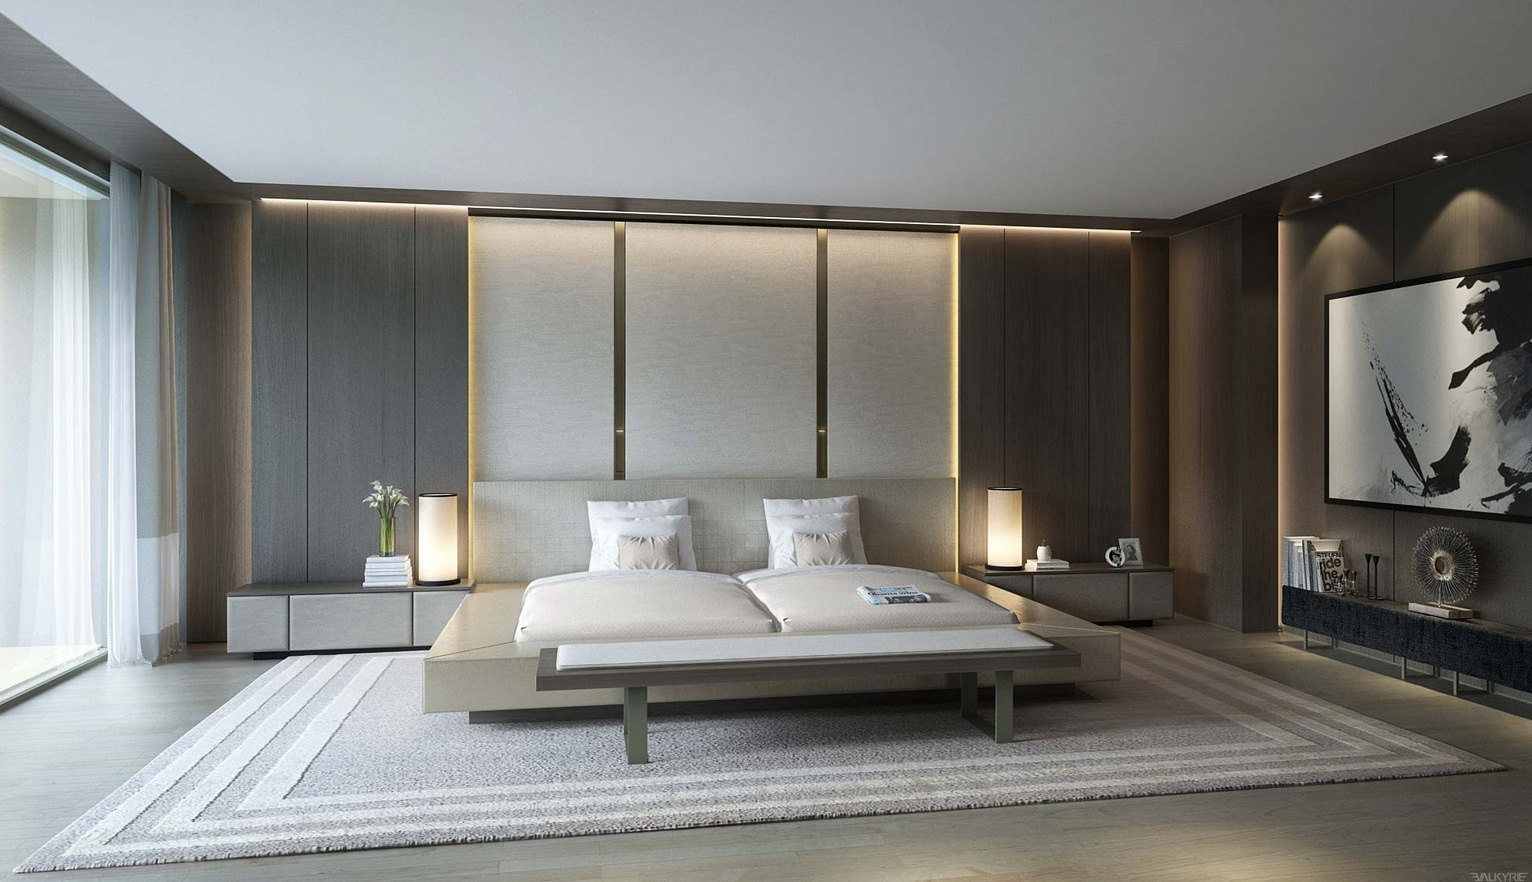 21 cool bedrooms for clean and simple design inspiration for Different bedroom styles